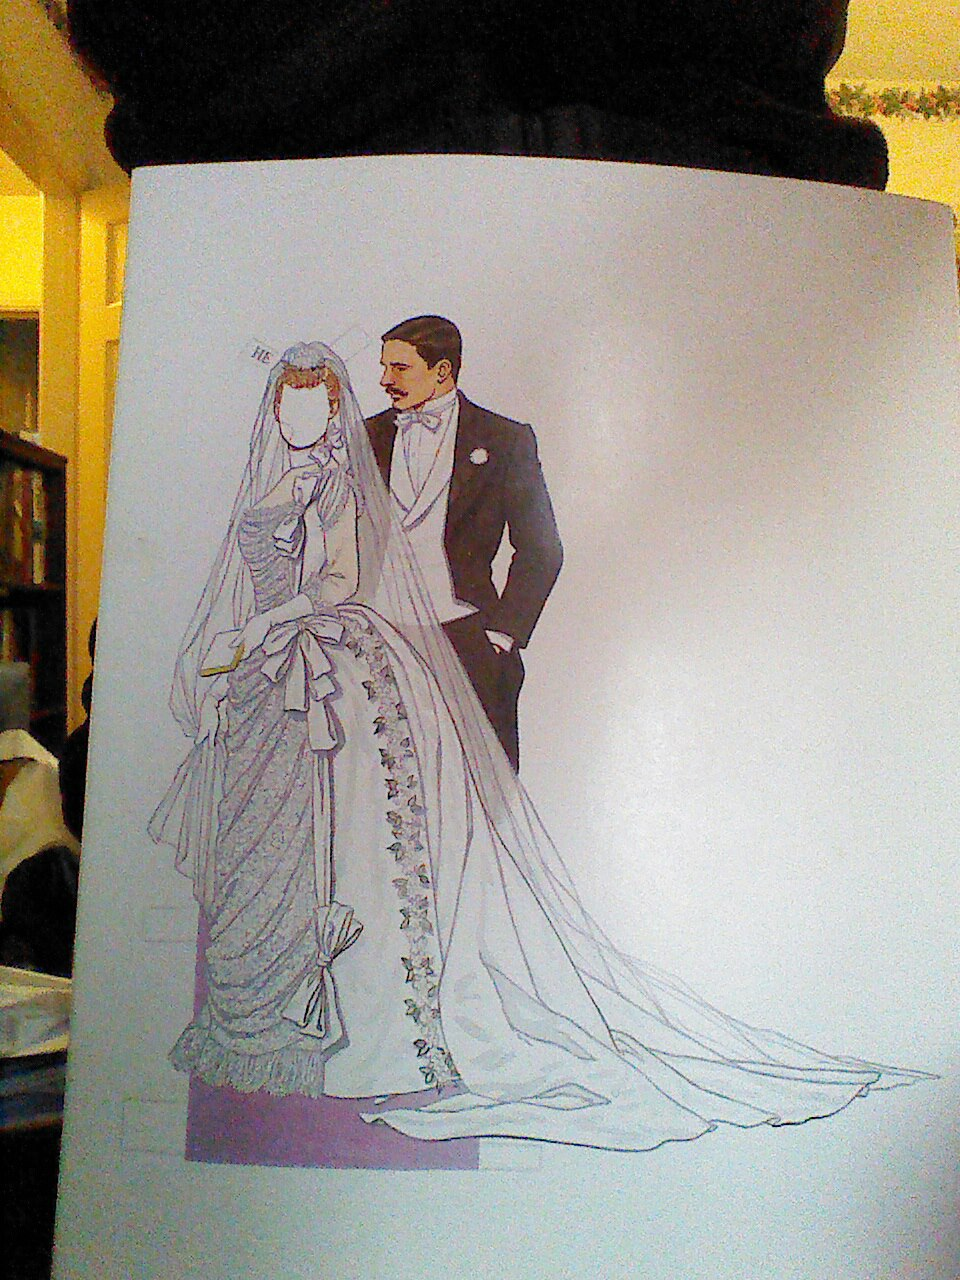 The bride is faceless for your projecting pleasure.